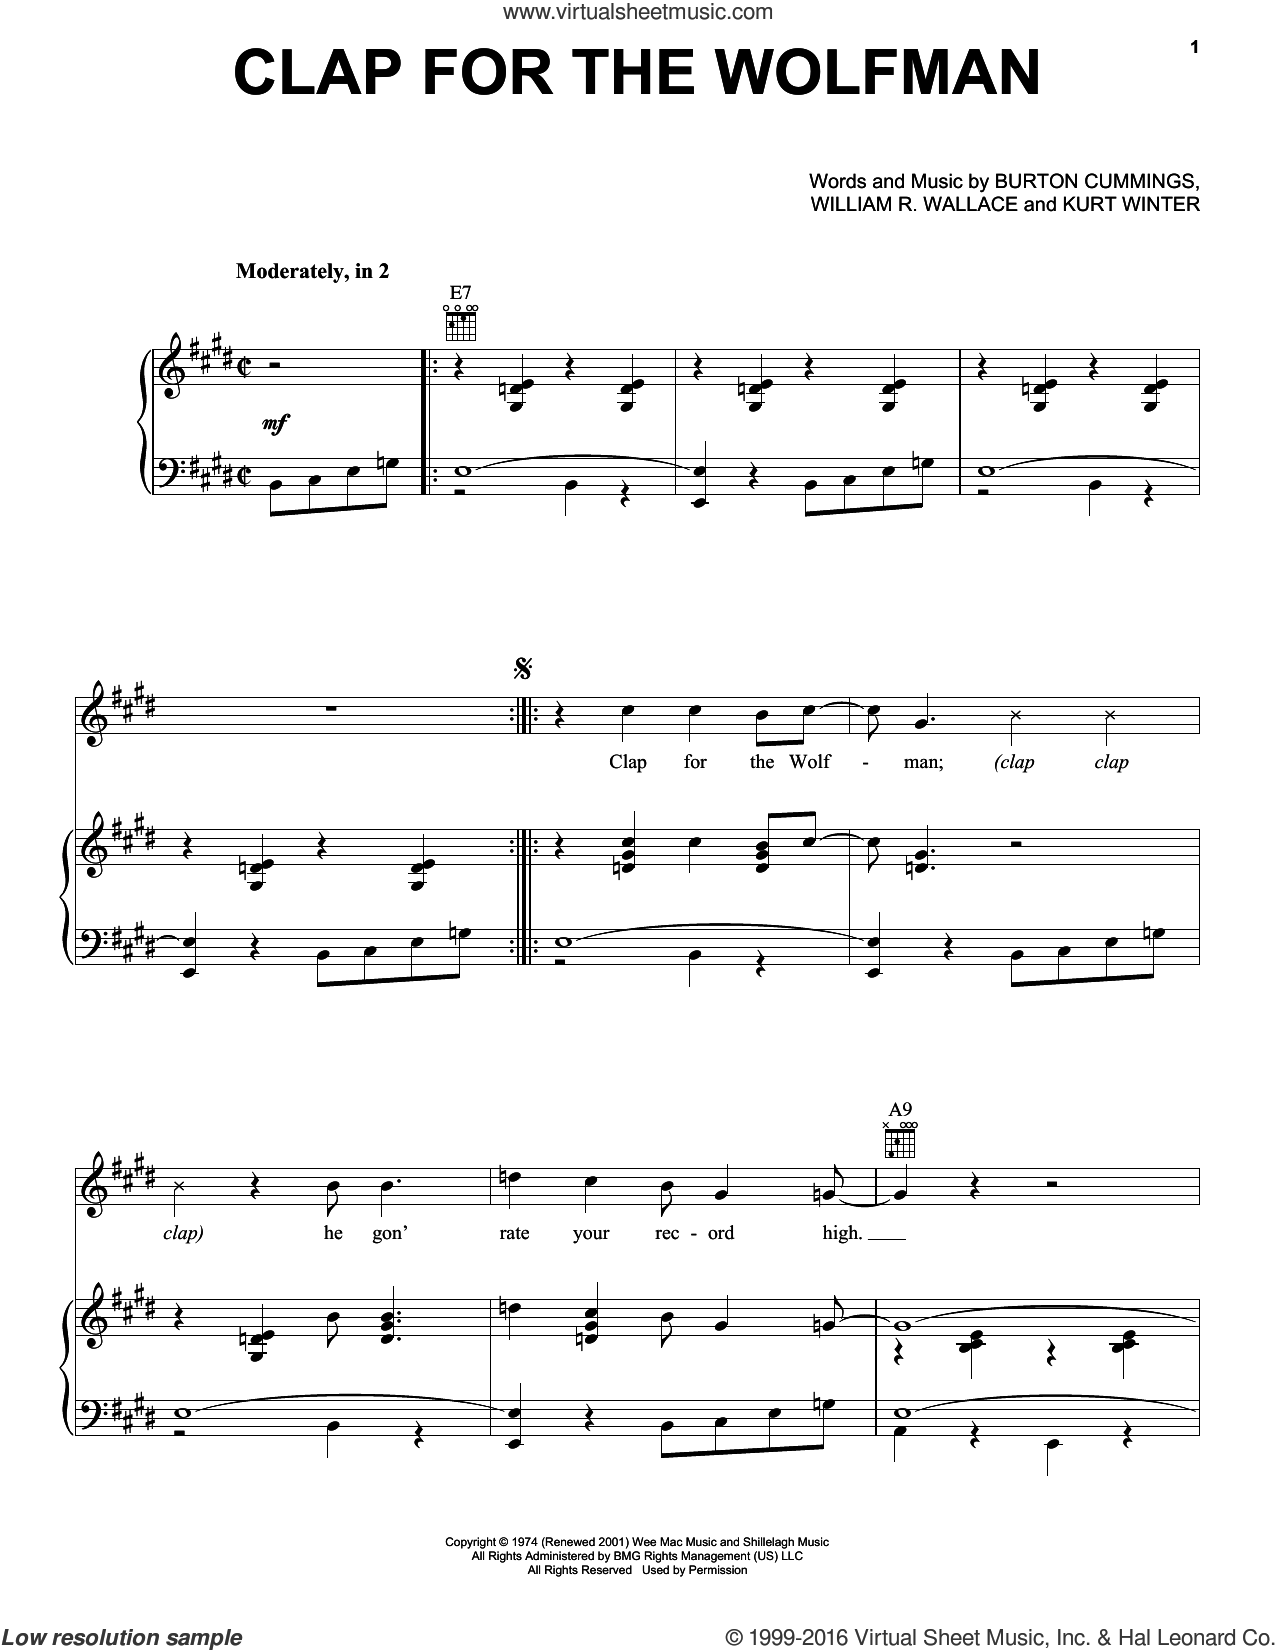 Clap For The Wolfman sheet music for voice, piano or guitar by The Guess Who, Burton Cummings, Kurt Winter and William R. Wallace, intermediate skill level